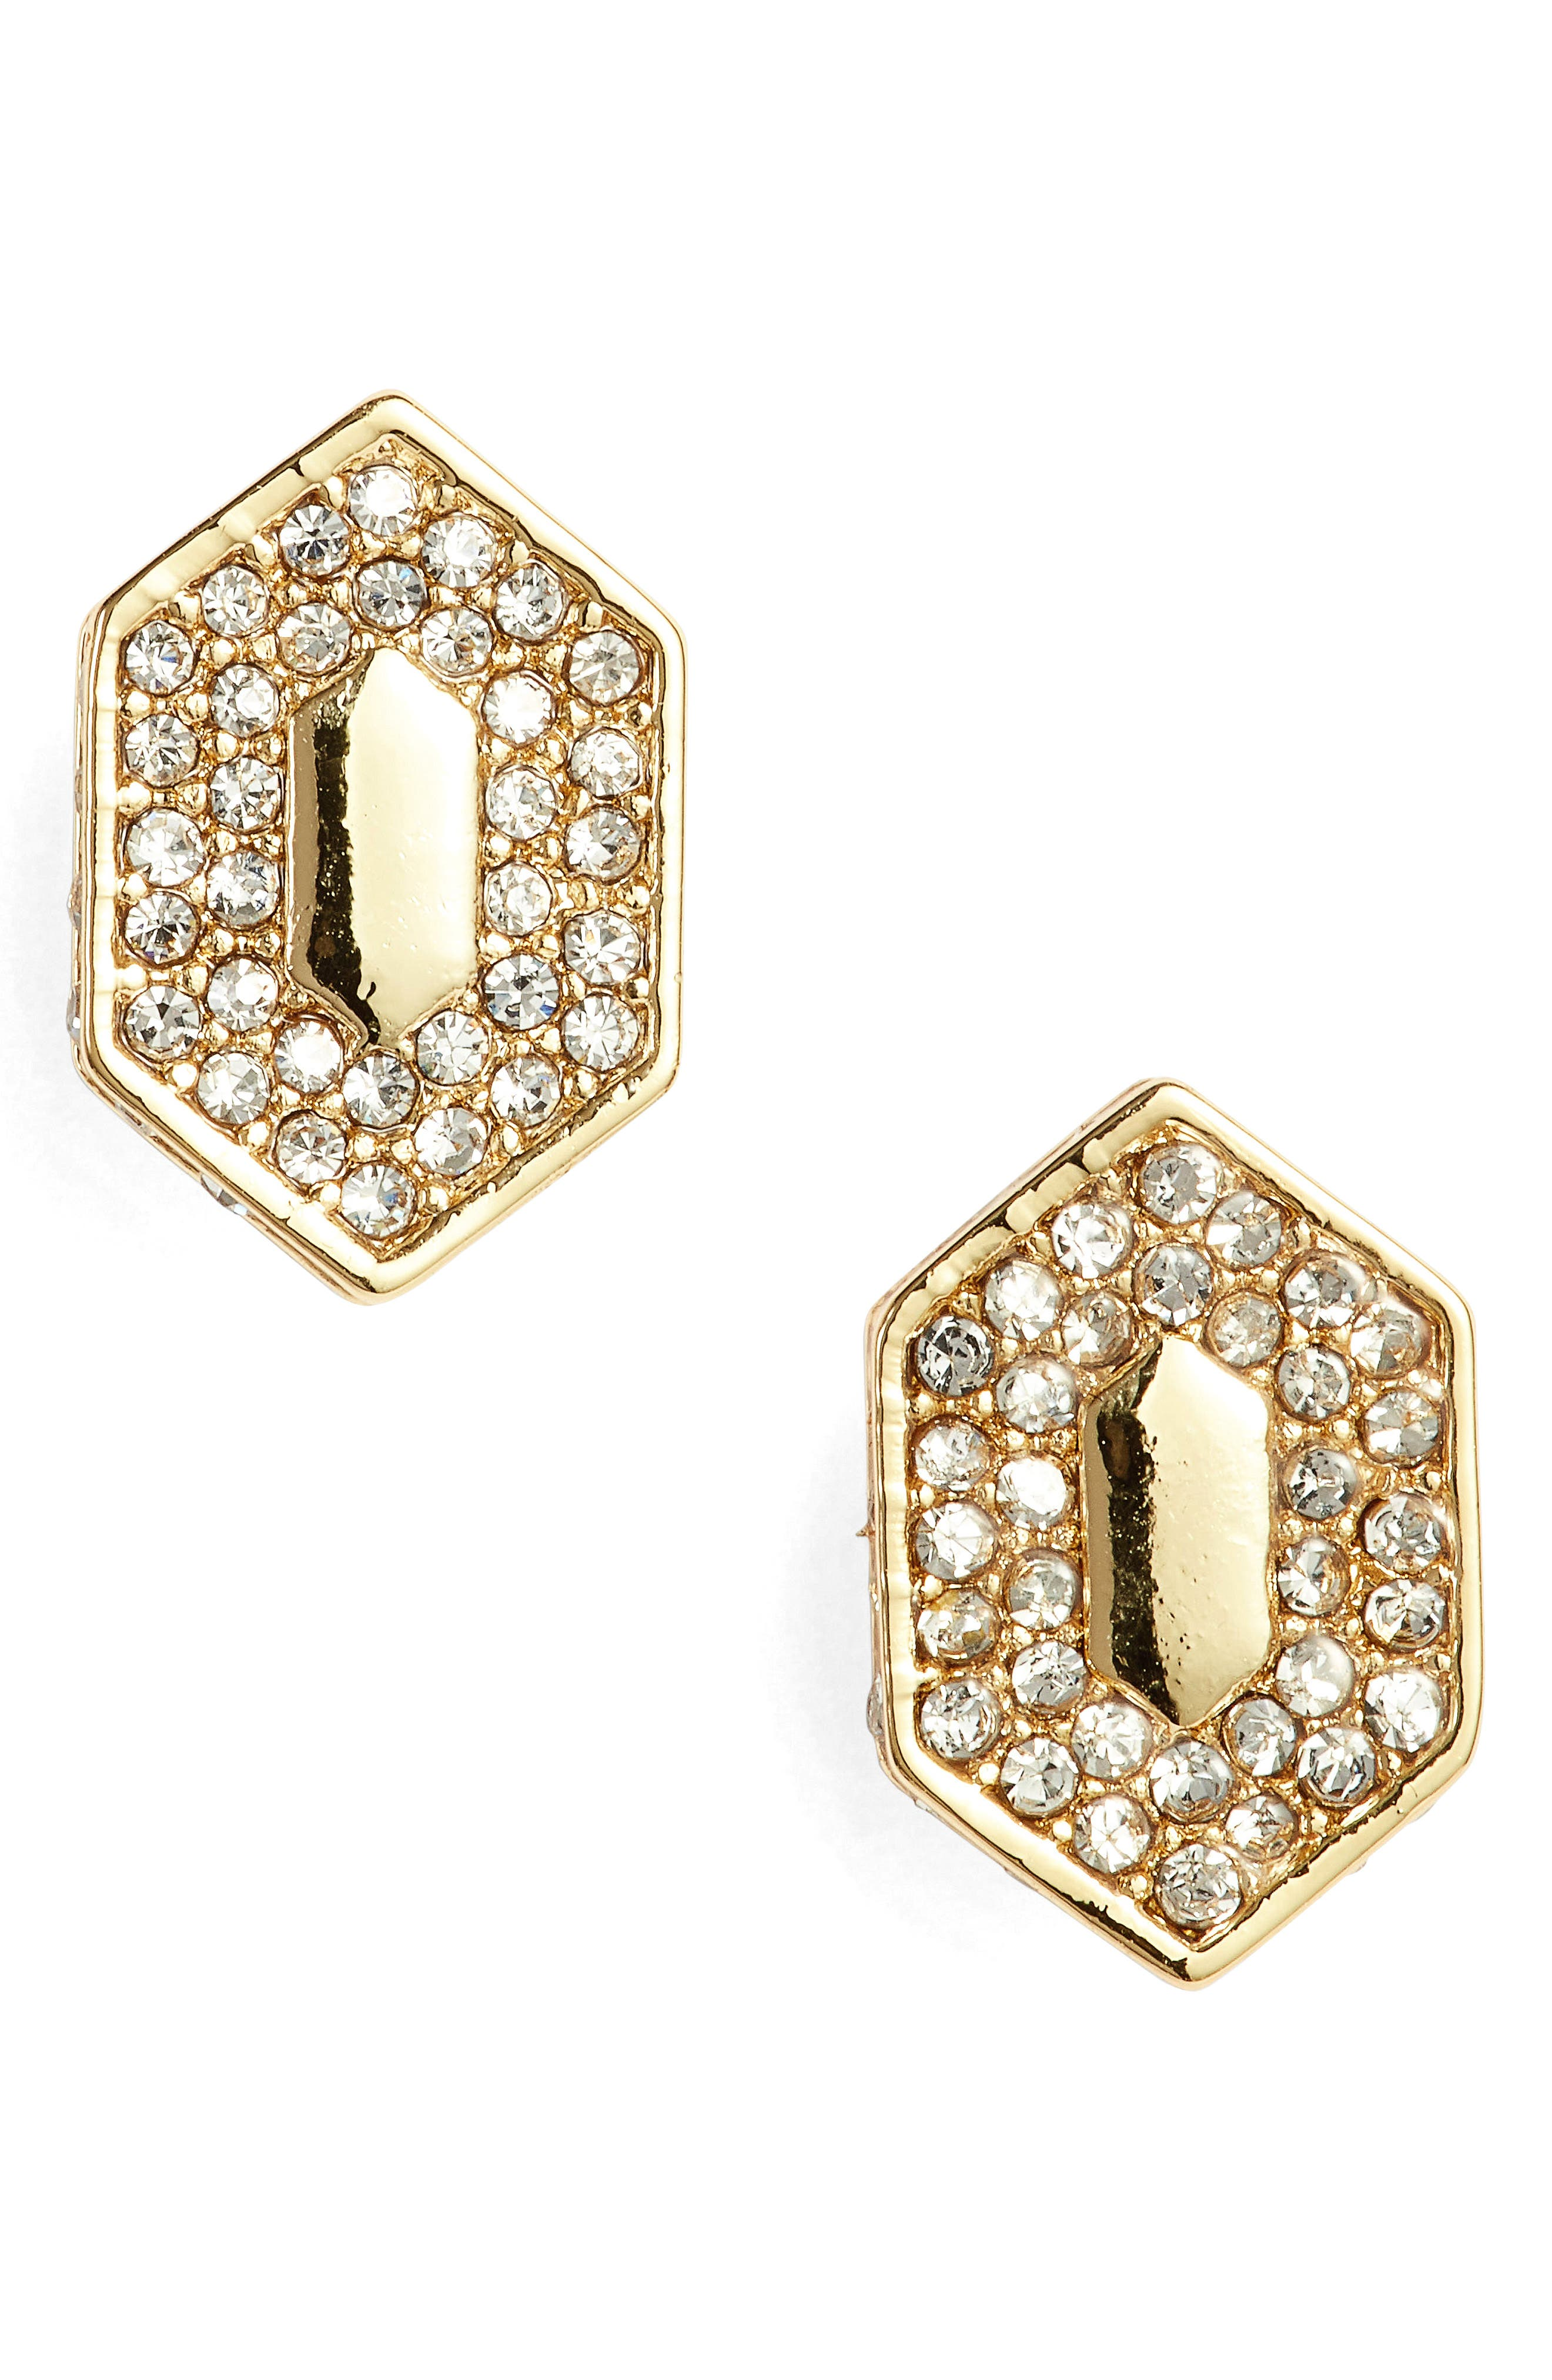 Main Image - Vince Camuto Pavé Crystal Stud Earrings